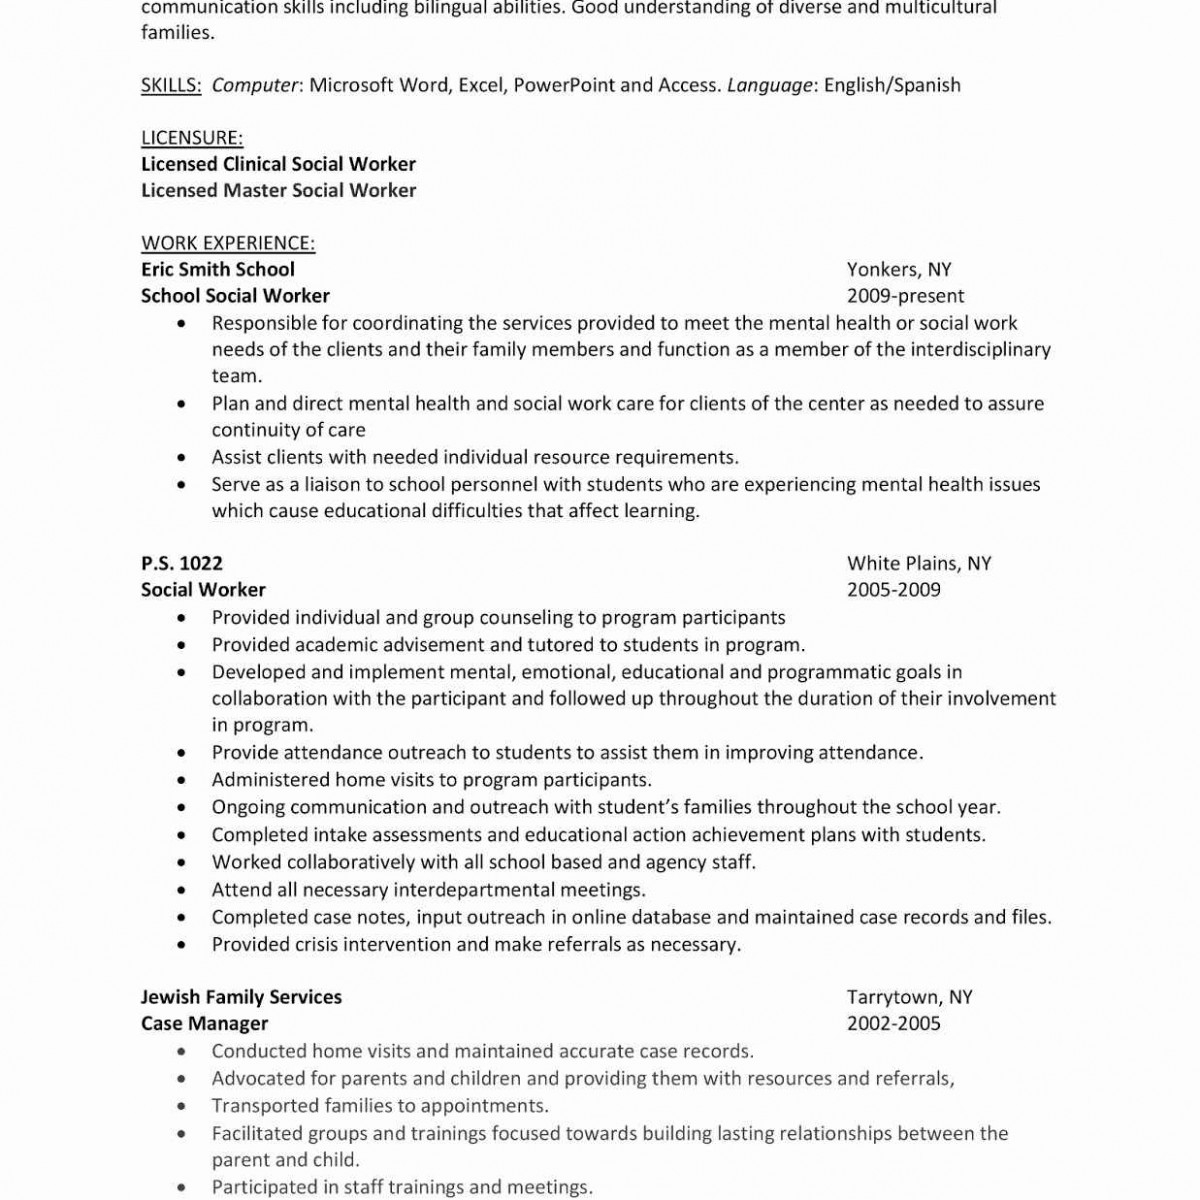 Dog Walker Resume - Dog Walker Resume Fresh Dog Sitter Resume Best Captivating